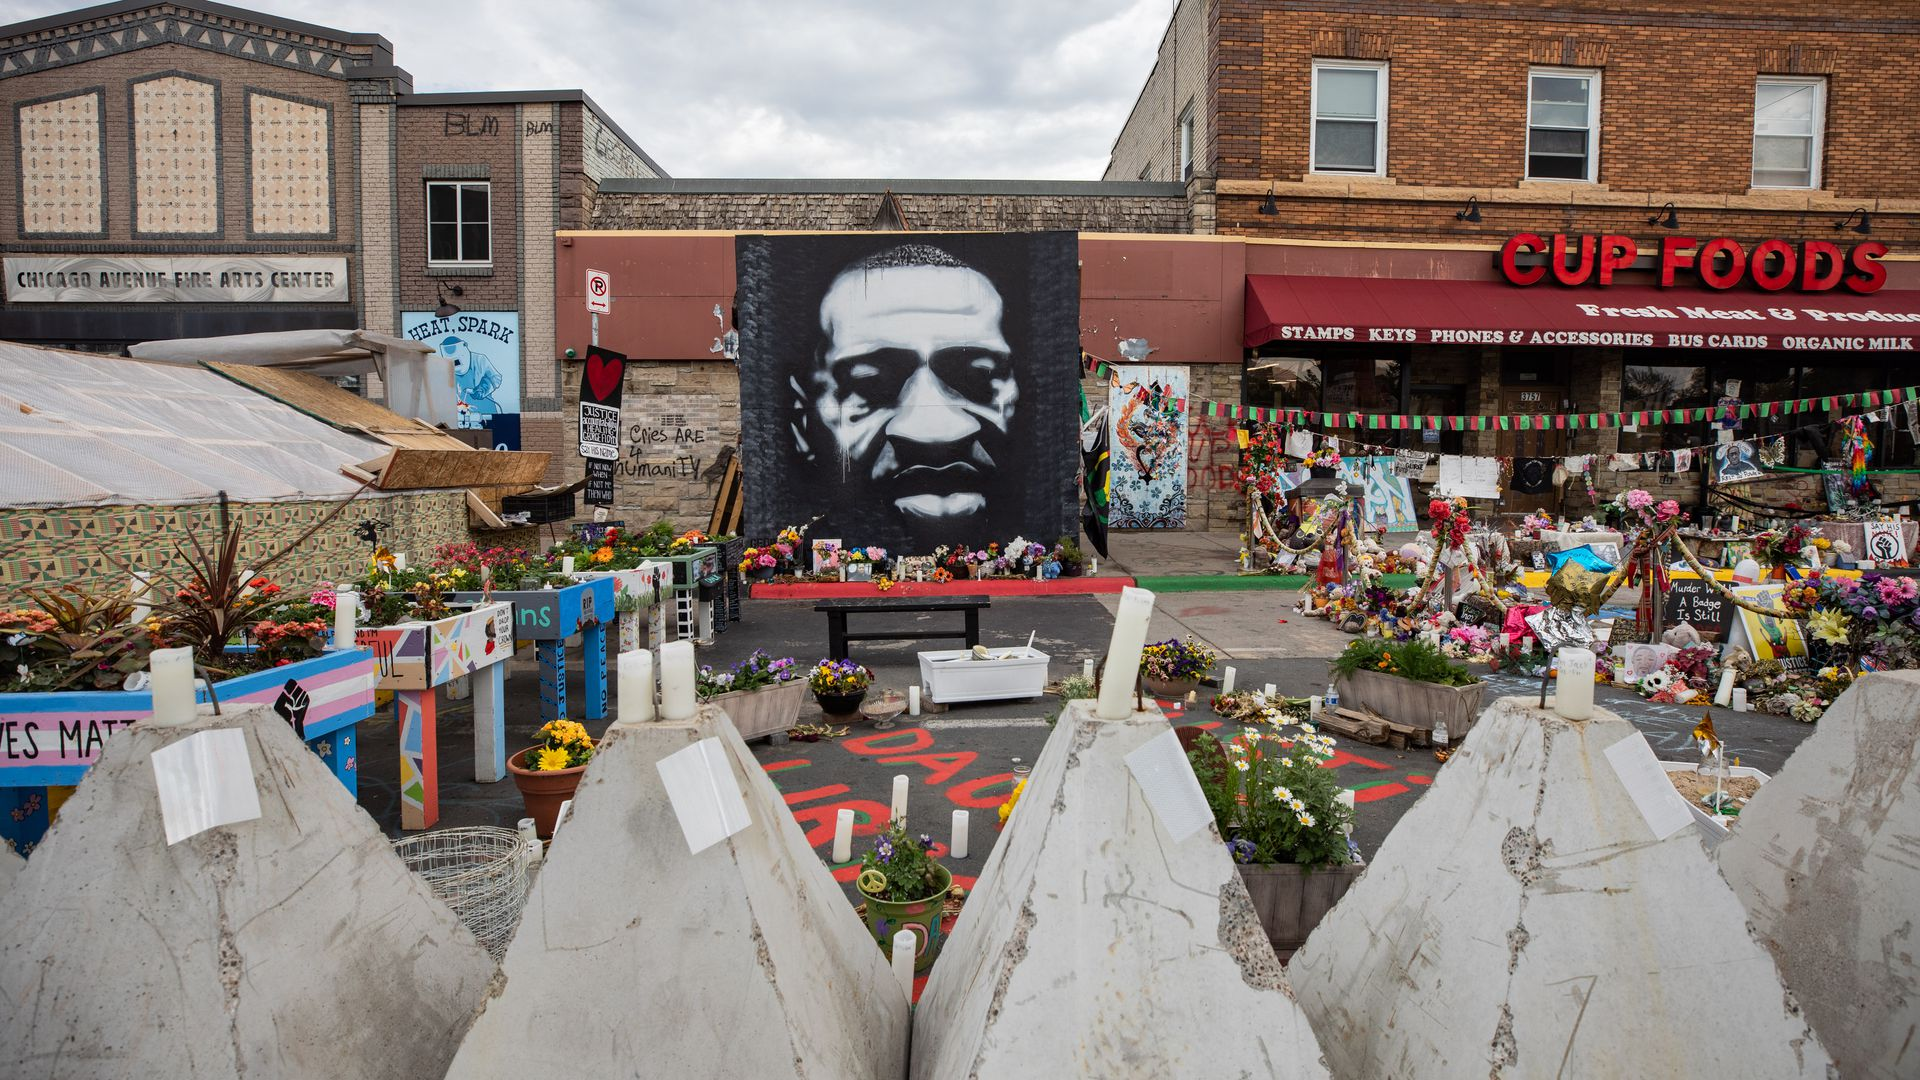 Photo of a memorial site outside a Cup Foods store, with a large portrait of George Floyd propped up in the center